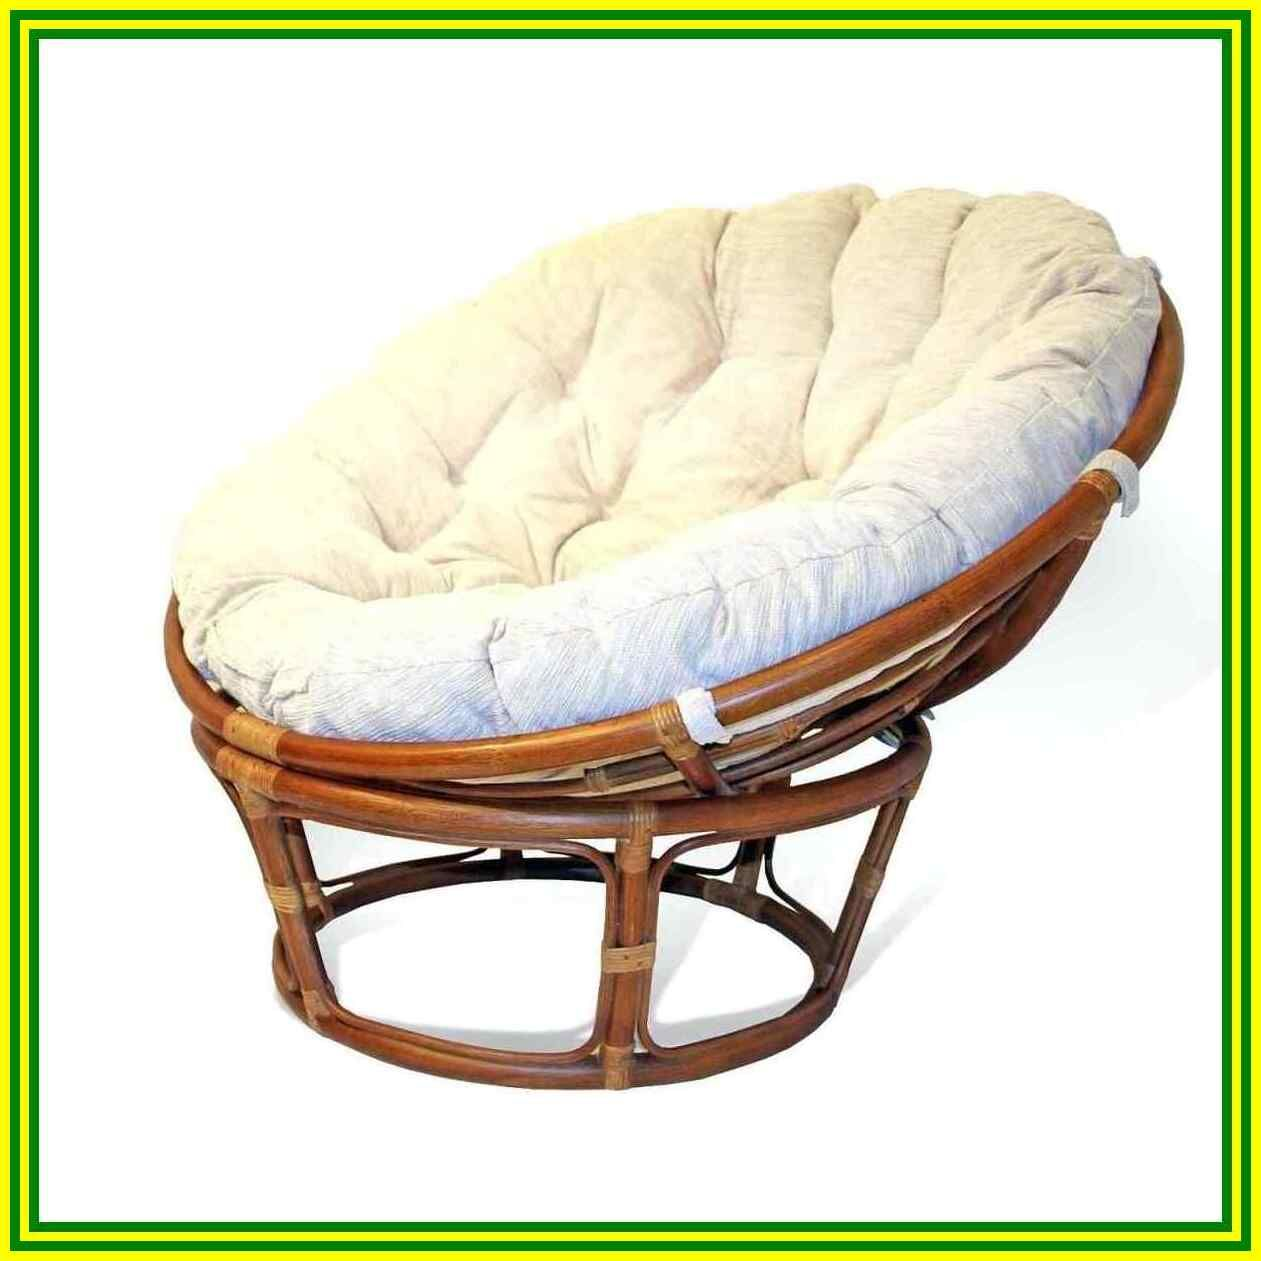 89 Reference Of Chair Round Basket In 2020 Bamboo Chair Rocking Chair Cushions Round Wicker Chair